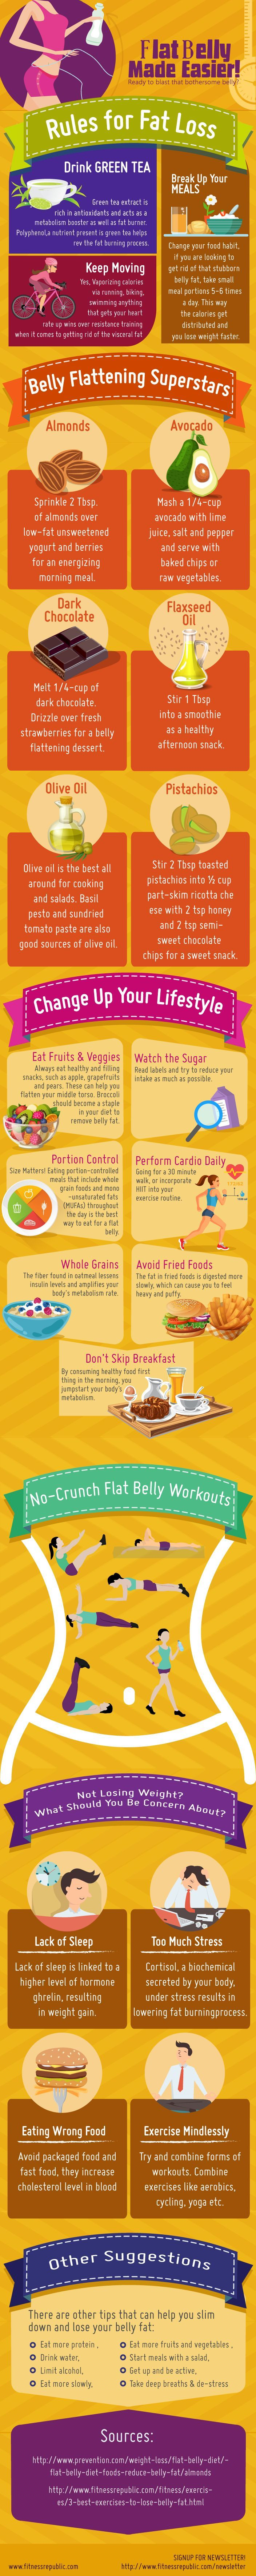 Safe healthy way to lose weight fast